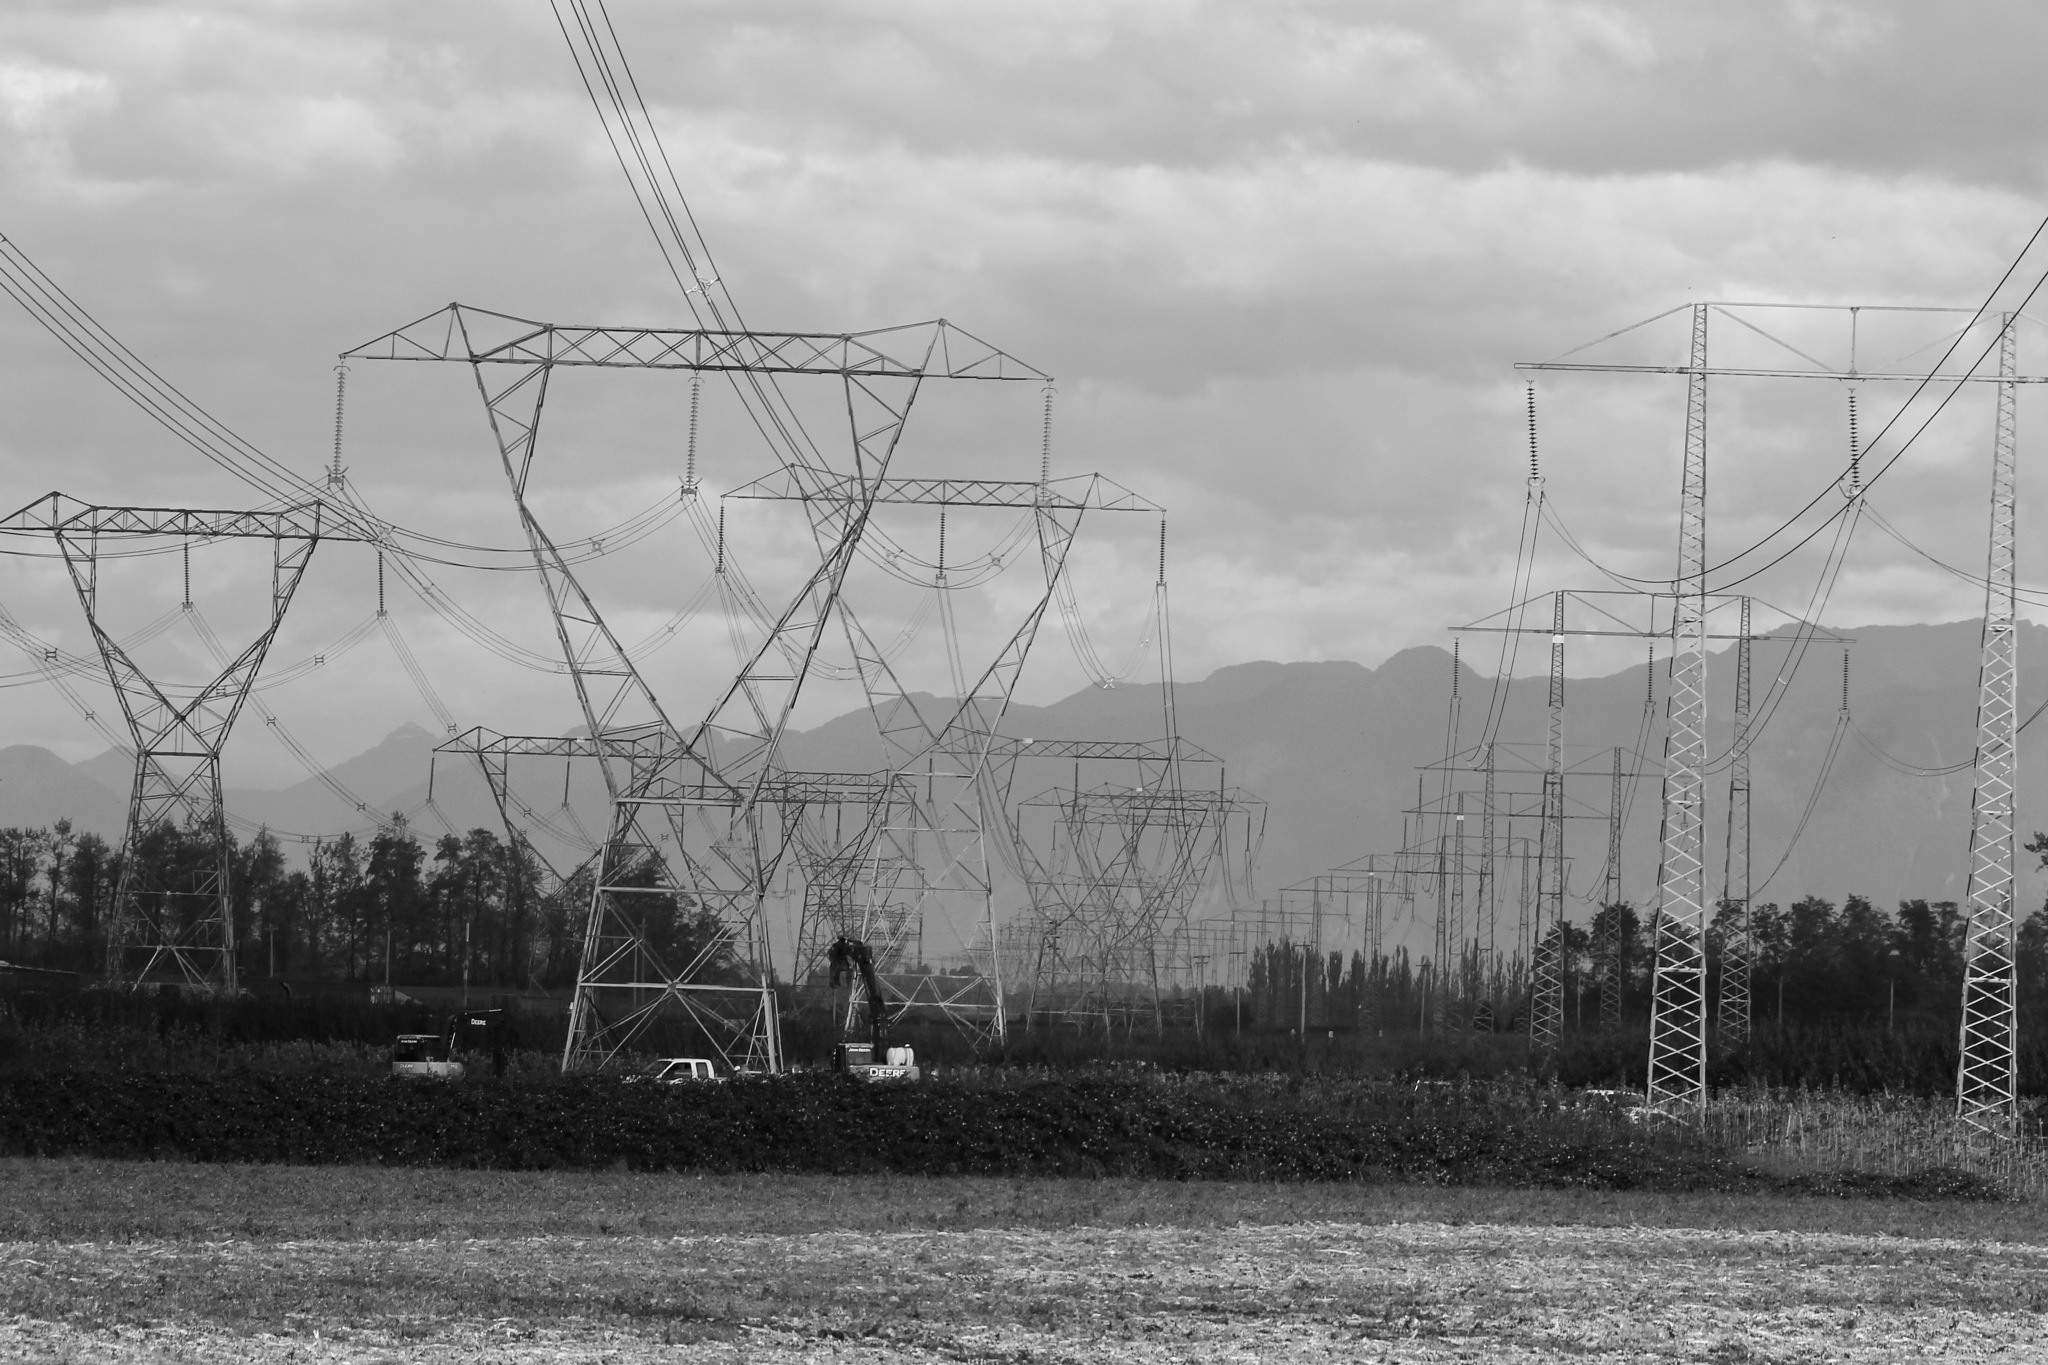 Power Lines. by henrywall63